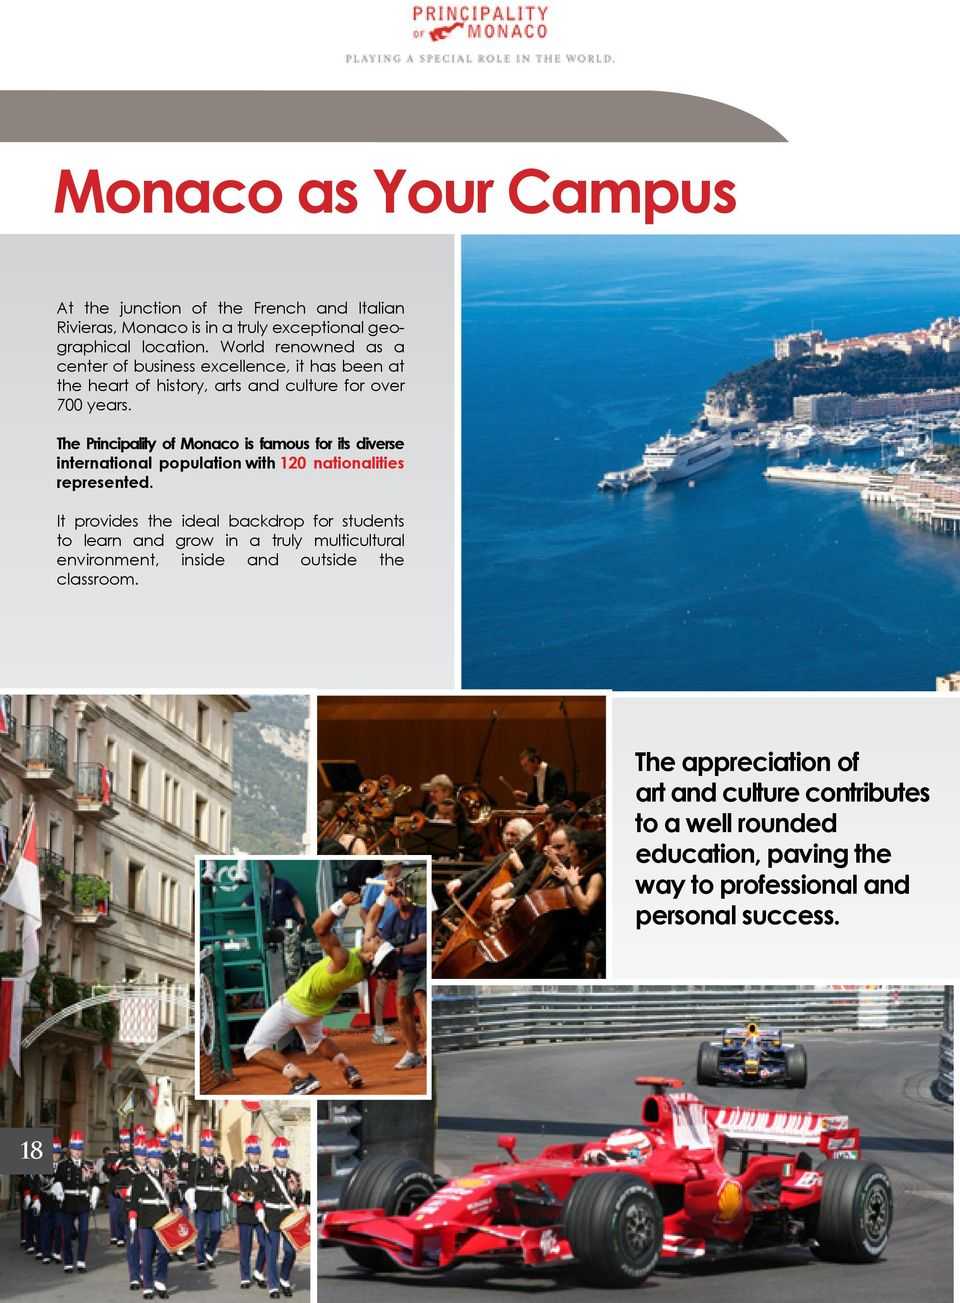 The Principality of Monaco is famous for its diverse international population with 120 nationalities represented.